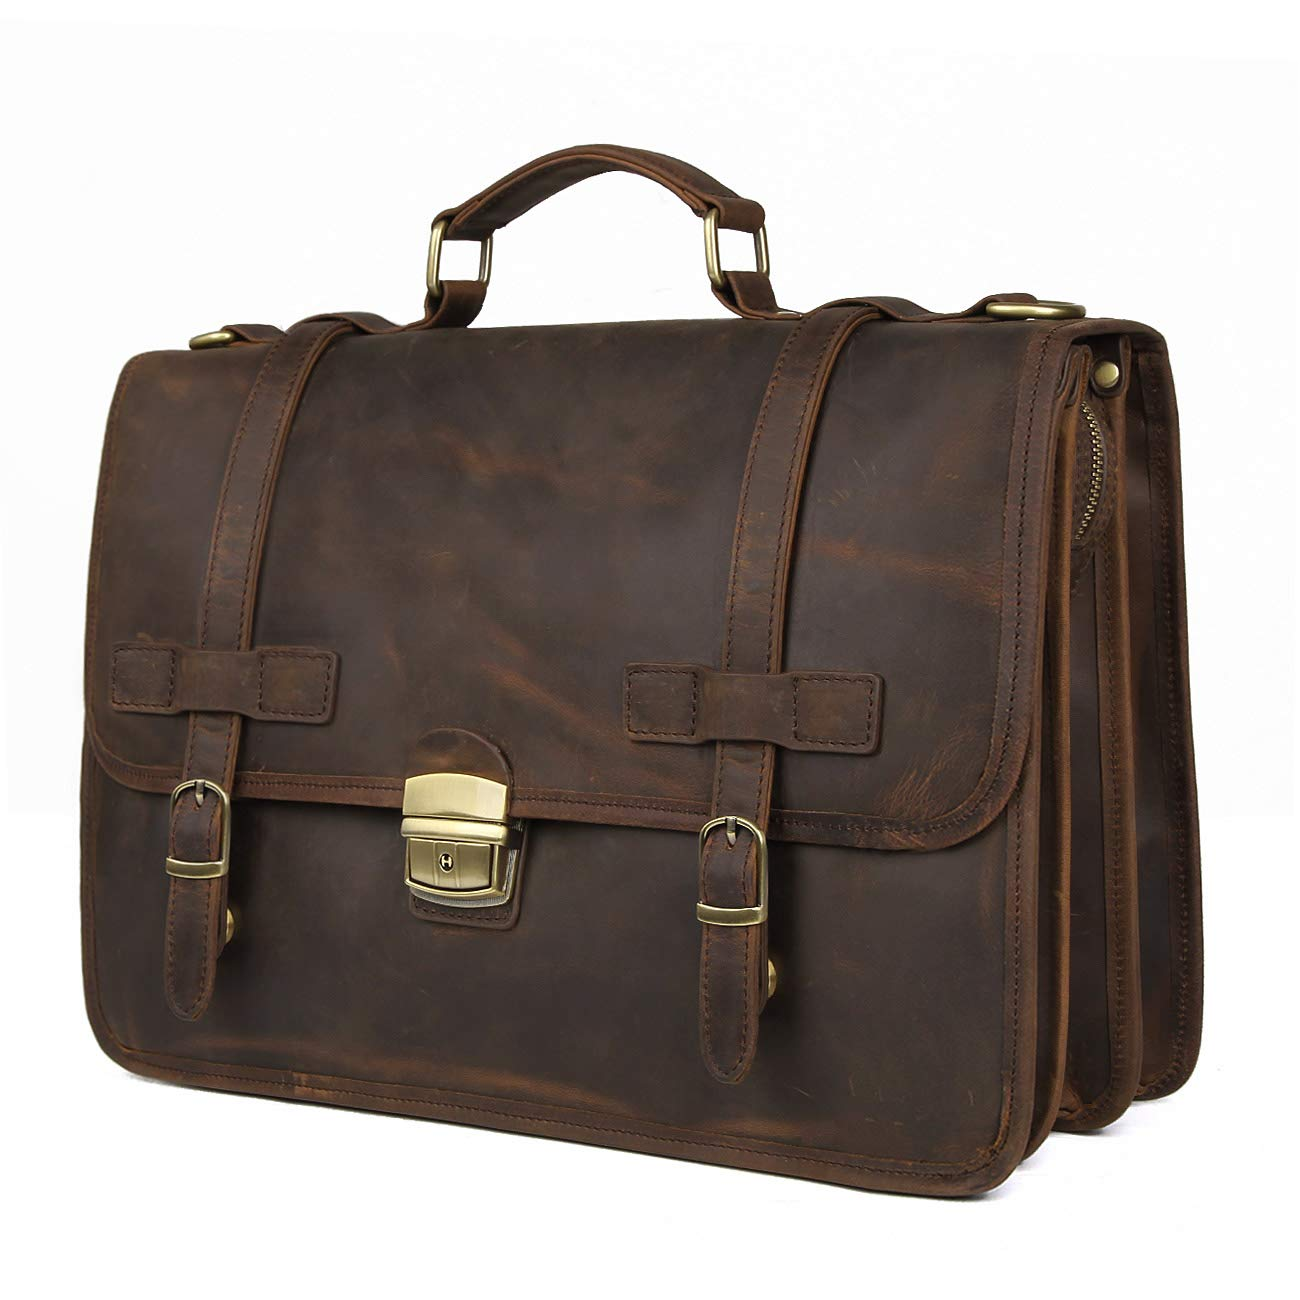 Augus Leather Briefcase Messenger for Men Anti-Theft 14 inch Laptop Business Travel Bags(Coffee)